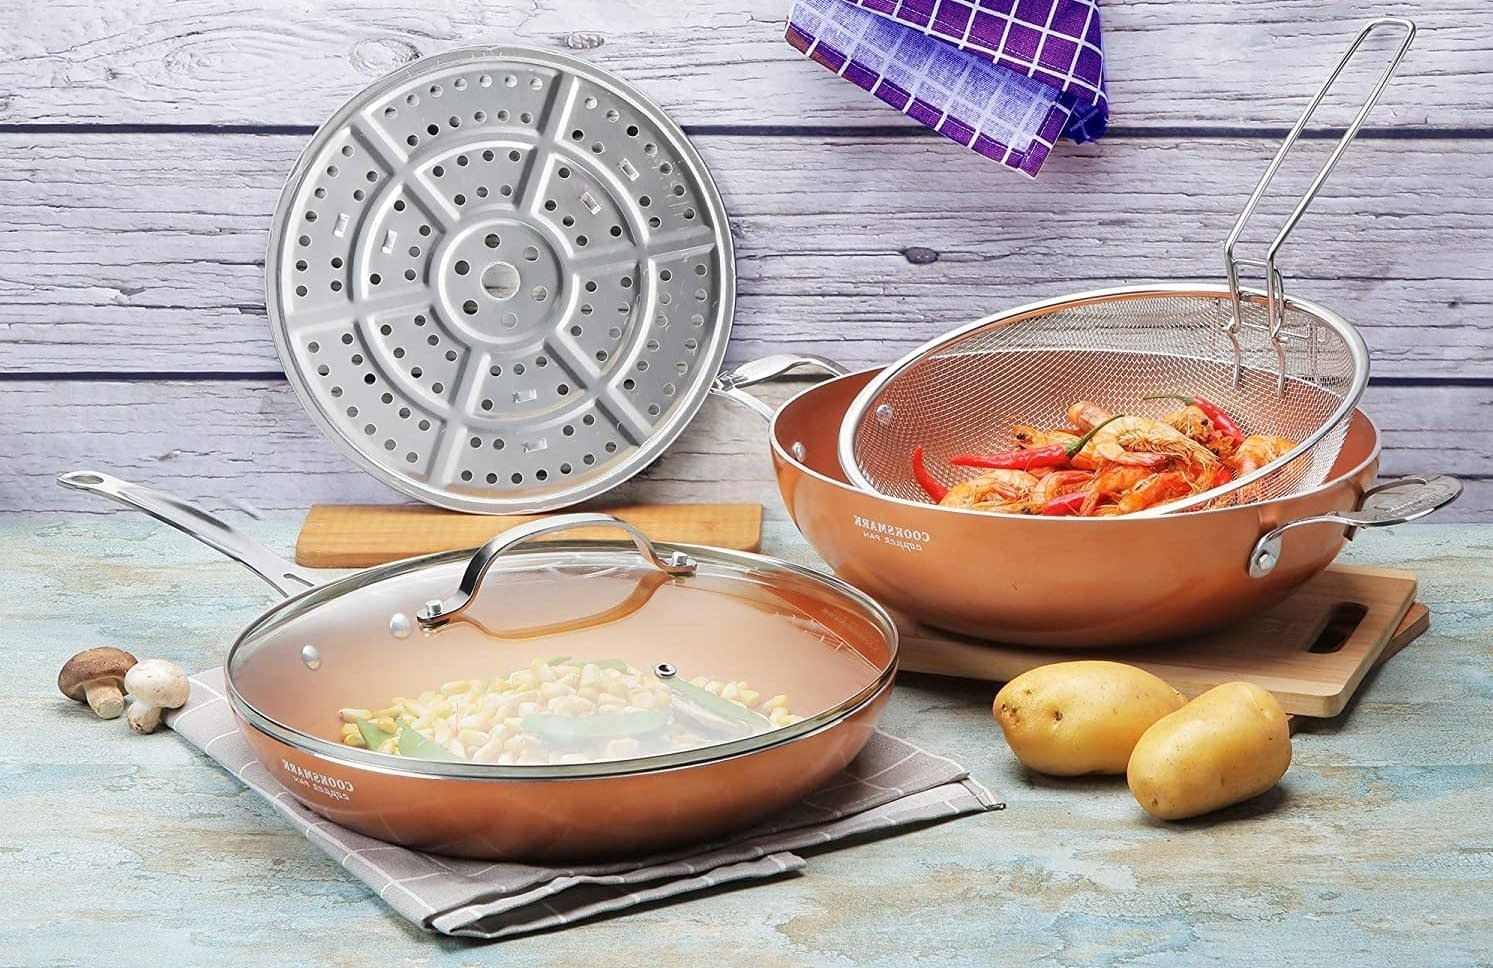 How To Keep Food From Sticking To Copper Pans 1